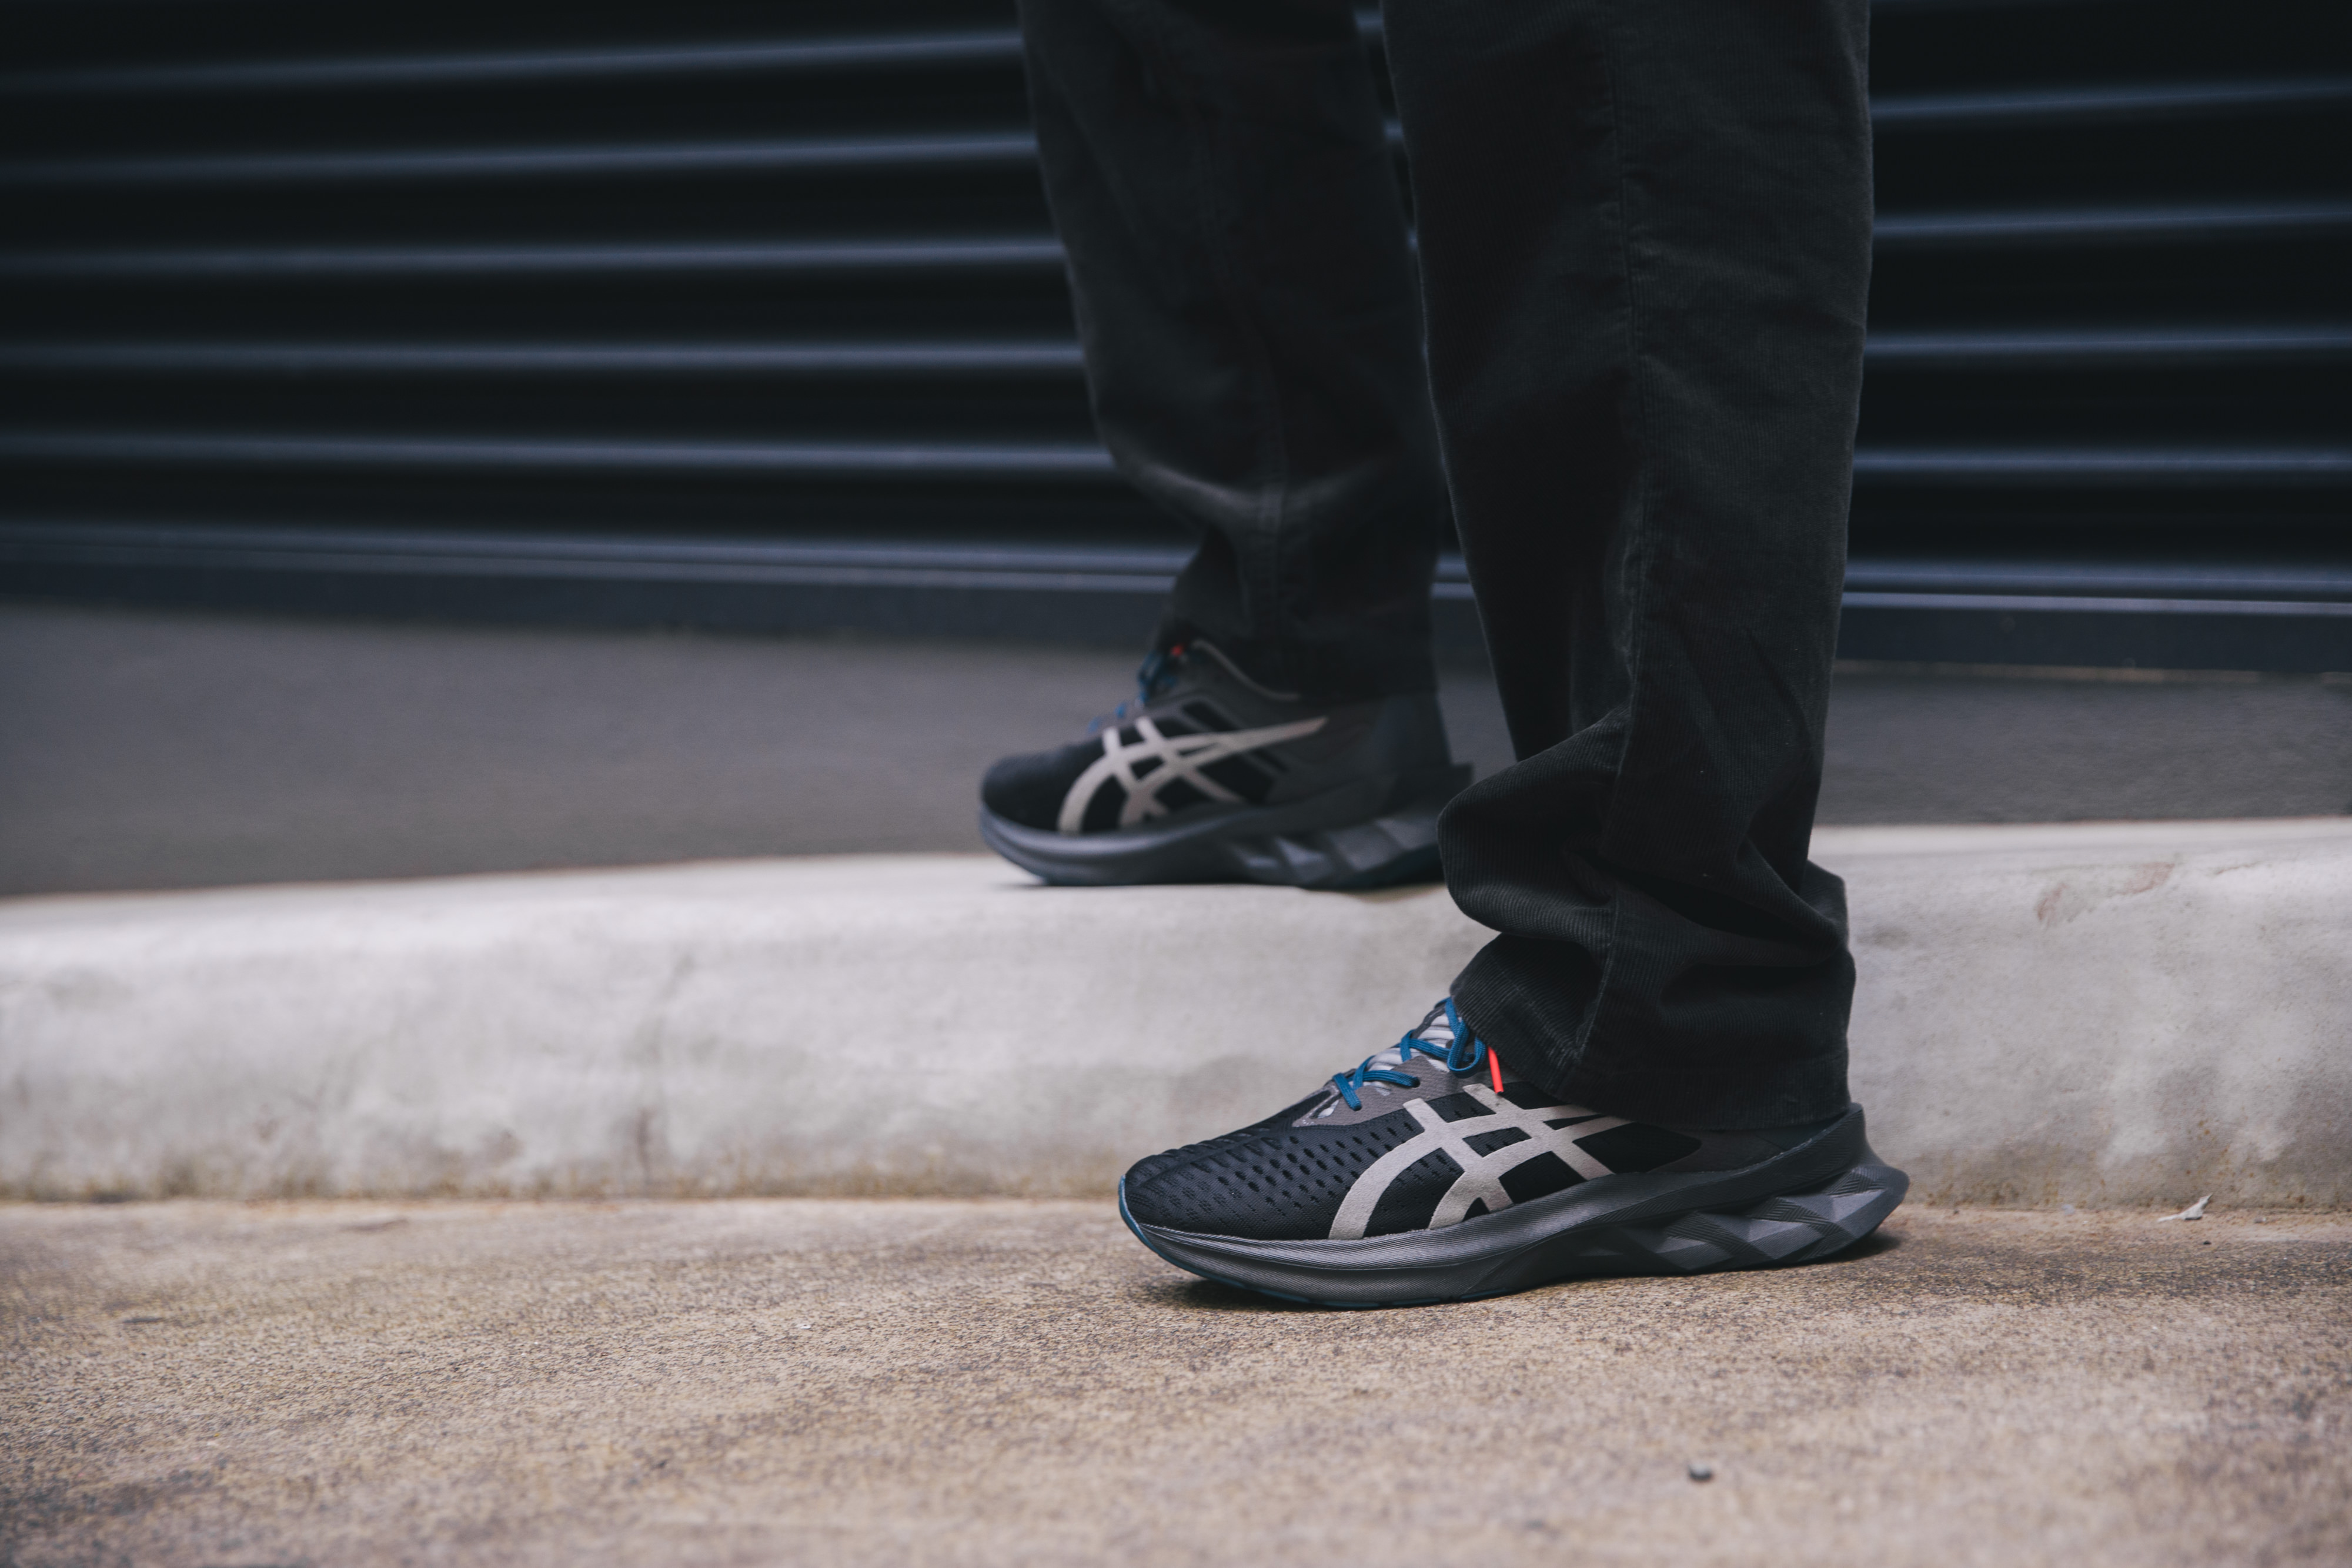 Outfit Of The Week 27/07/2020 Asics, Norse Projects, and Nanamica